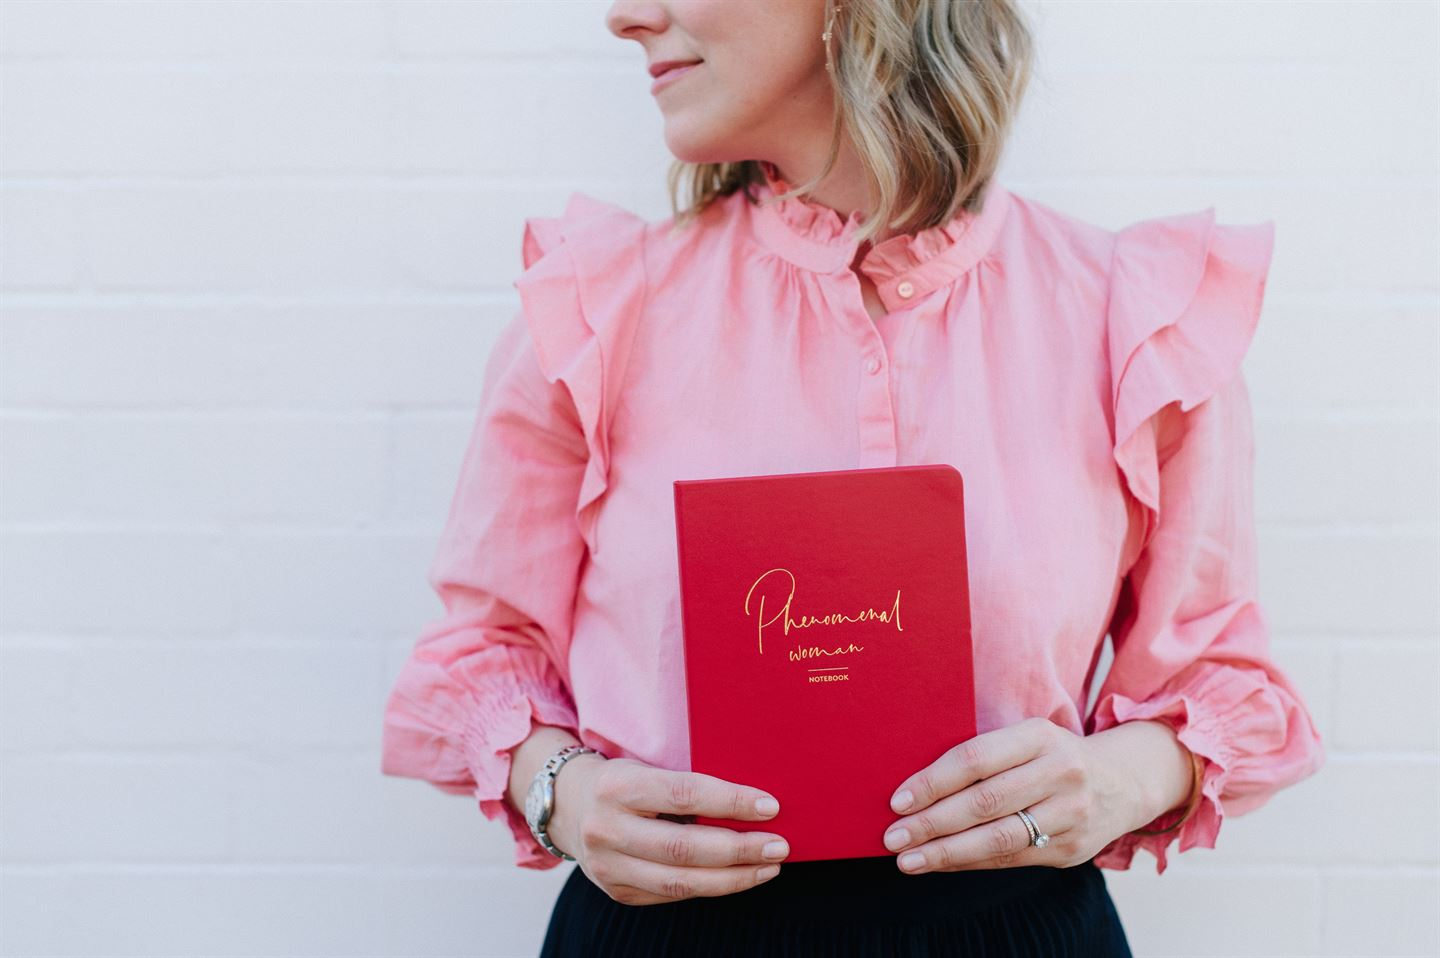 Phenomenal Woman Planners